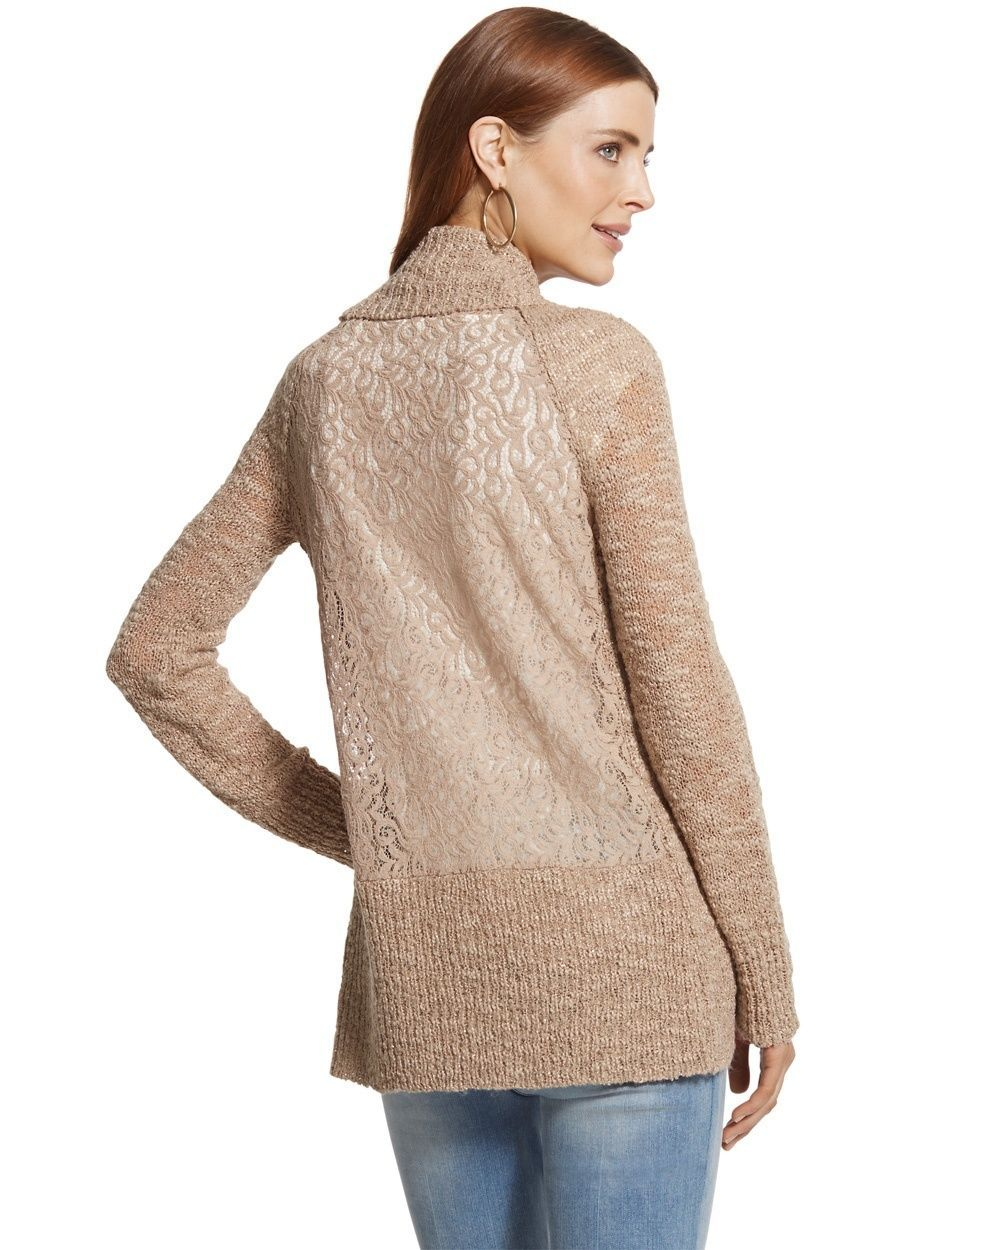 Chico's Women's Lace Back Lara Cocoon Cardigan | Cardigans For Men ...